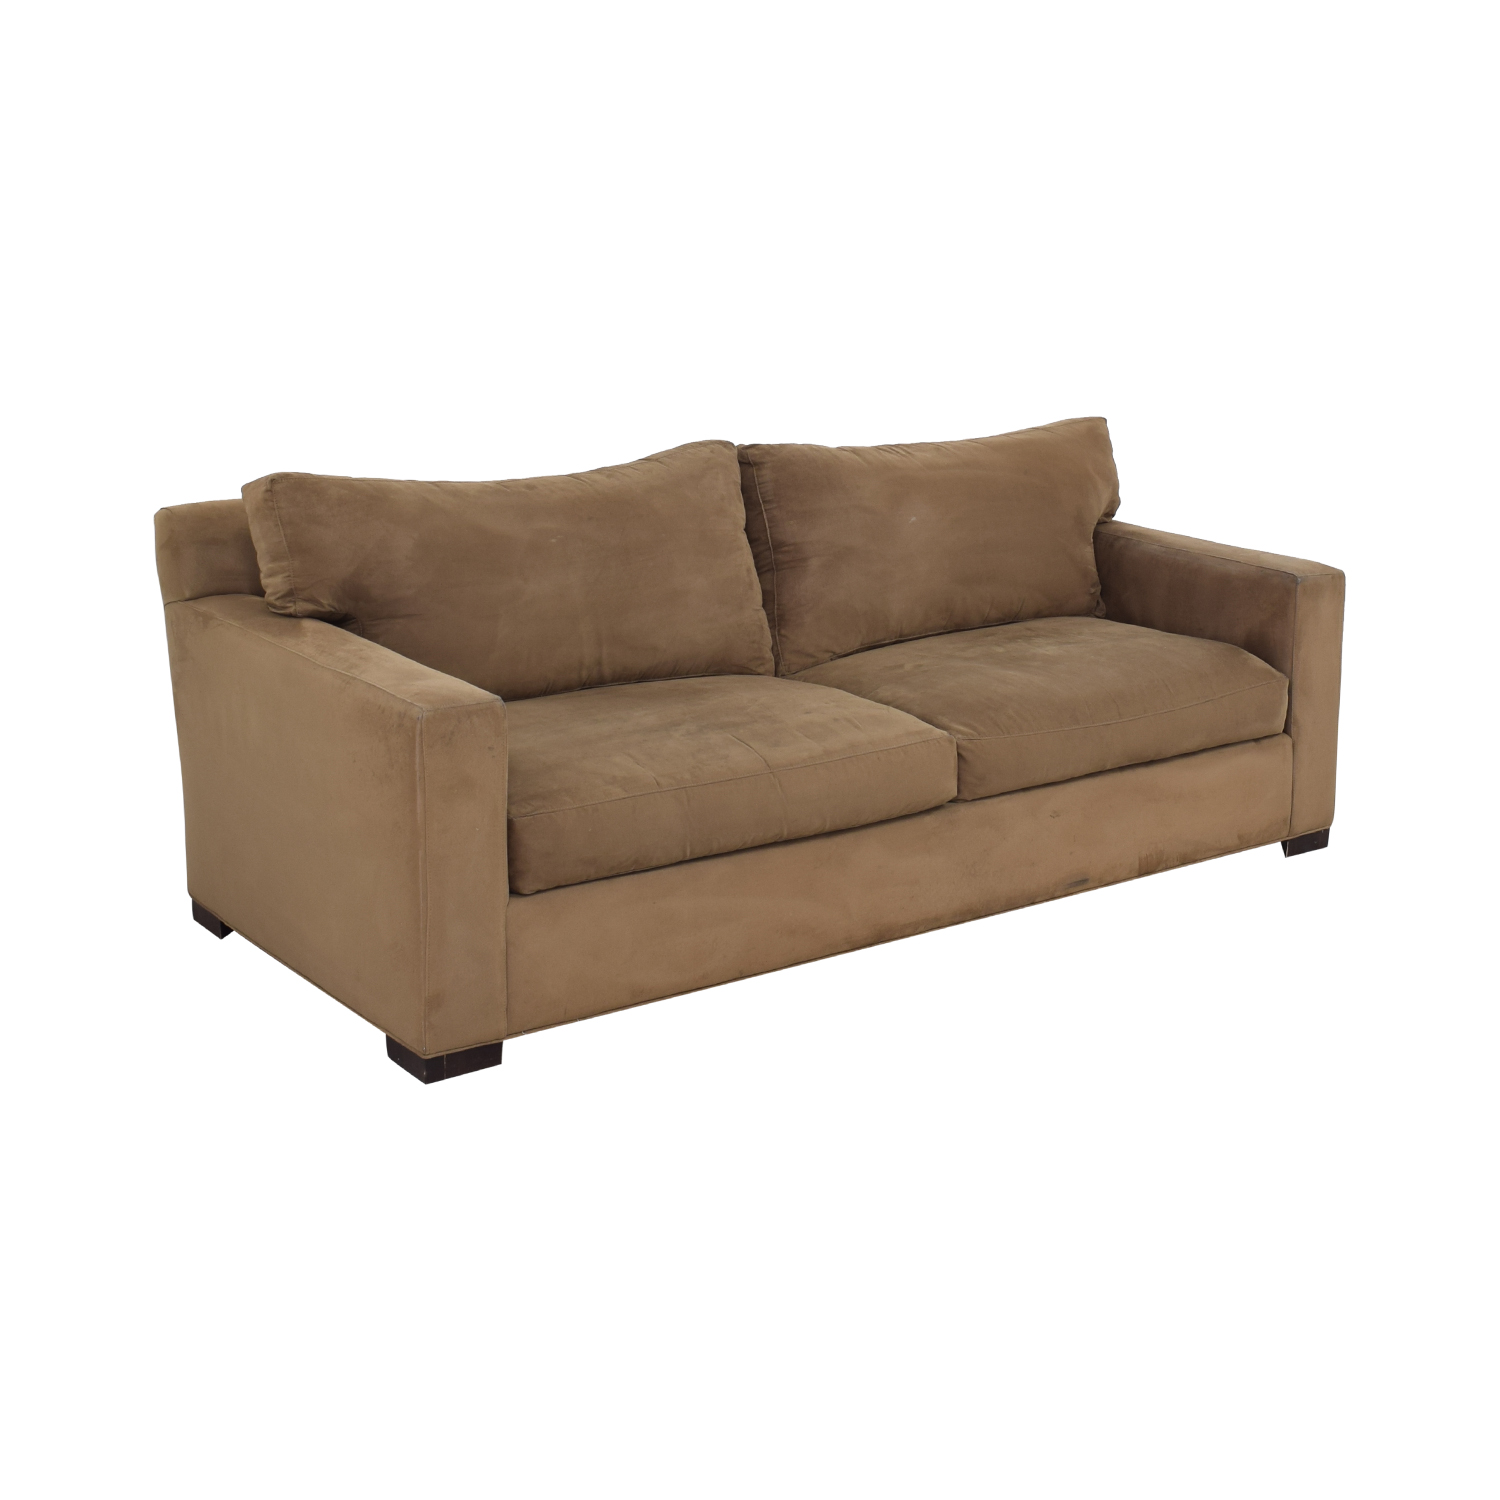 Crate & Barrel Crate & Barrel Axis 2-Seat Sofa on sale